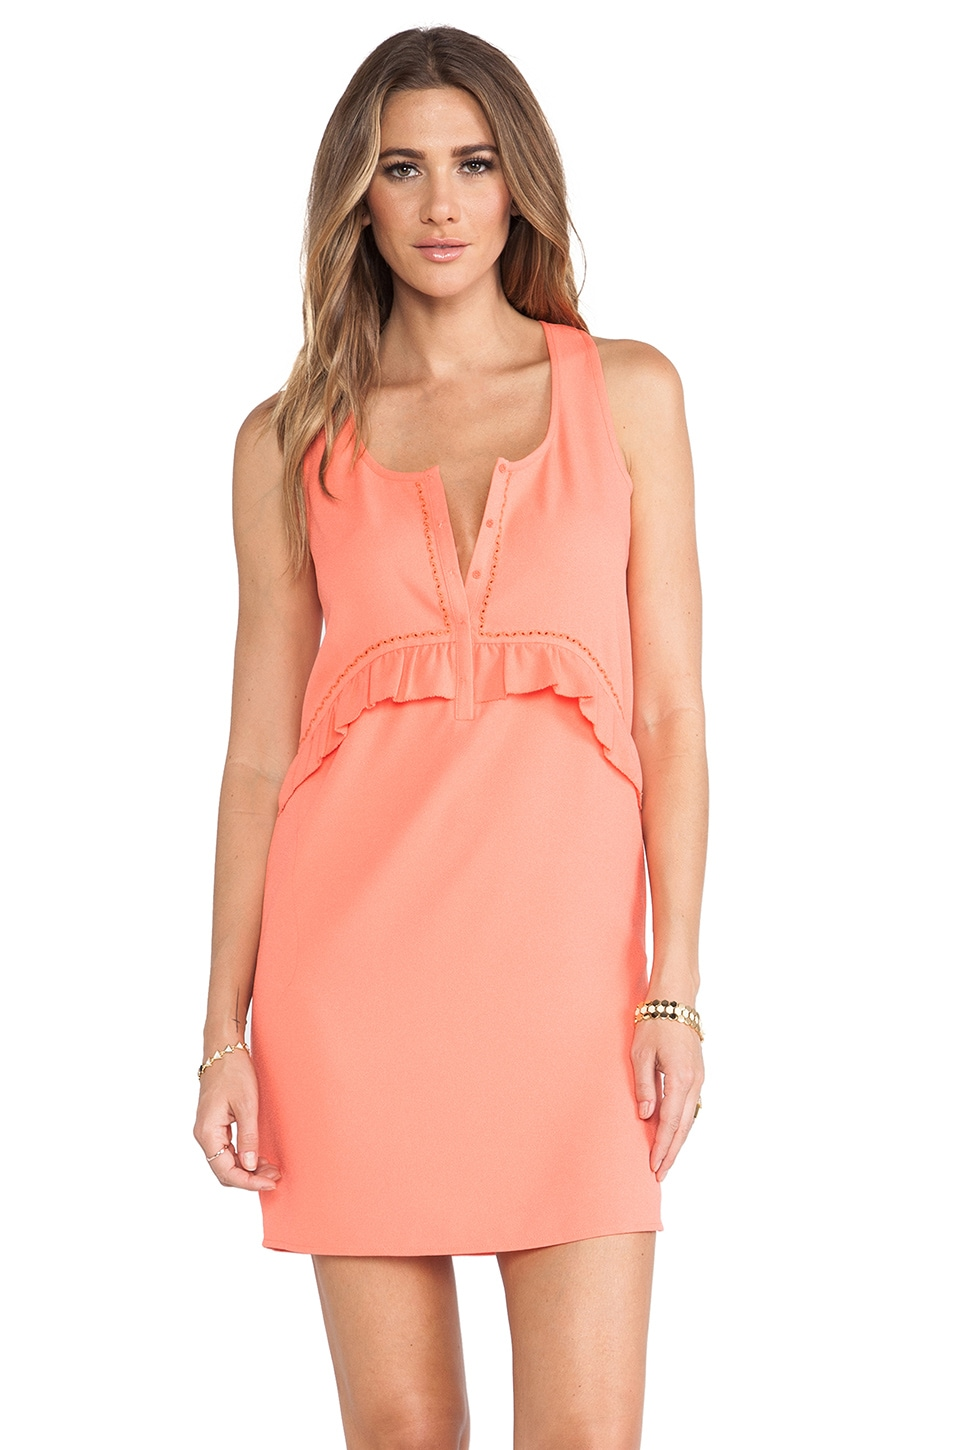 Maison Scotch Ruffle Dress in Coral